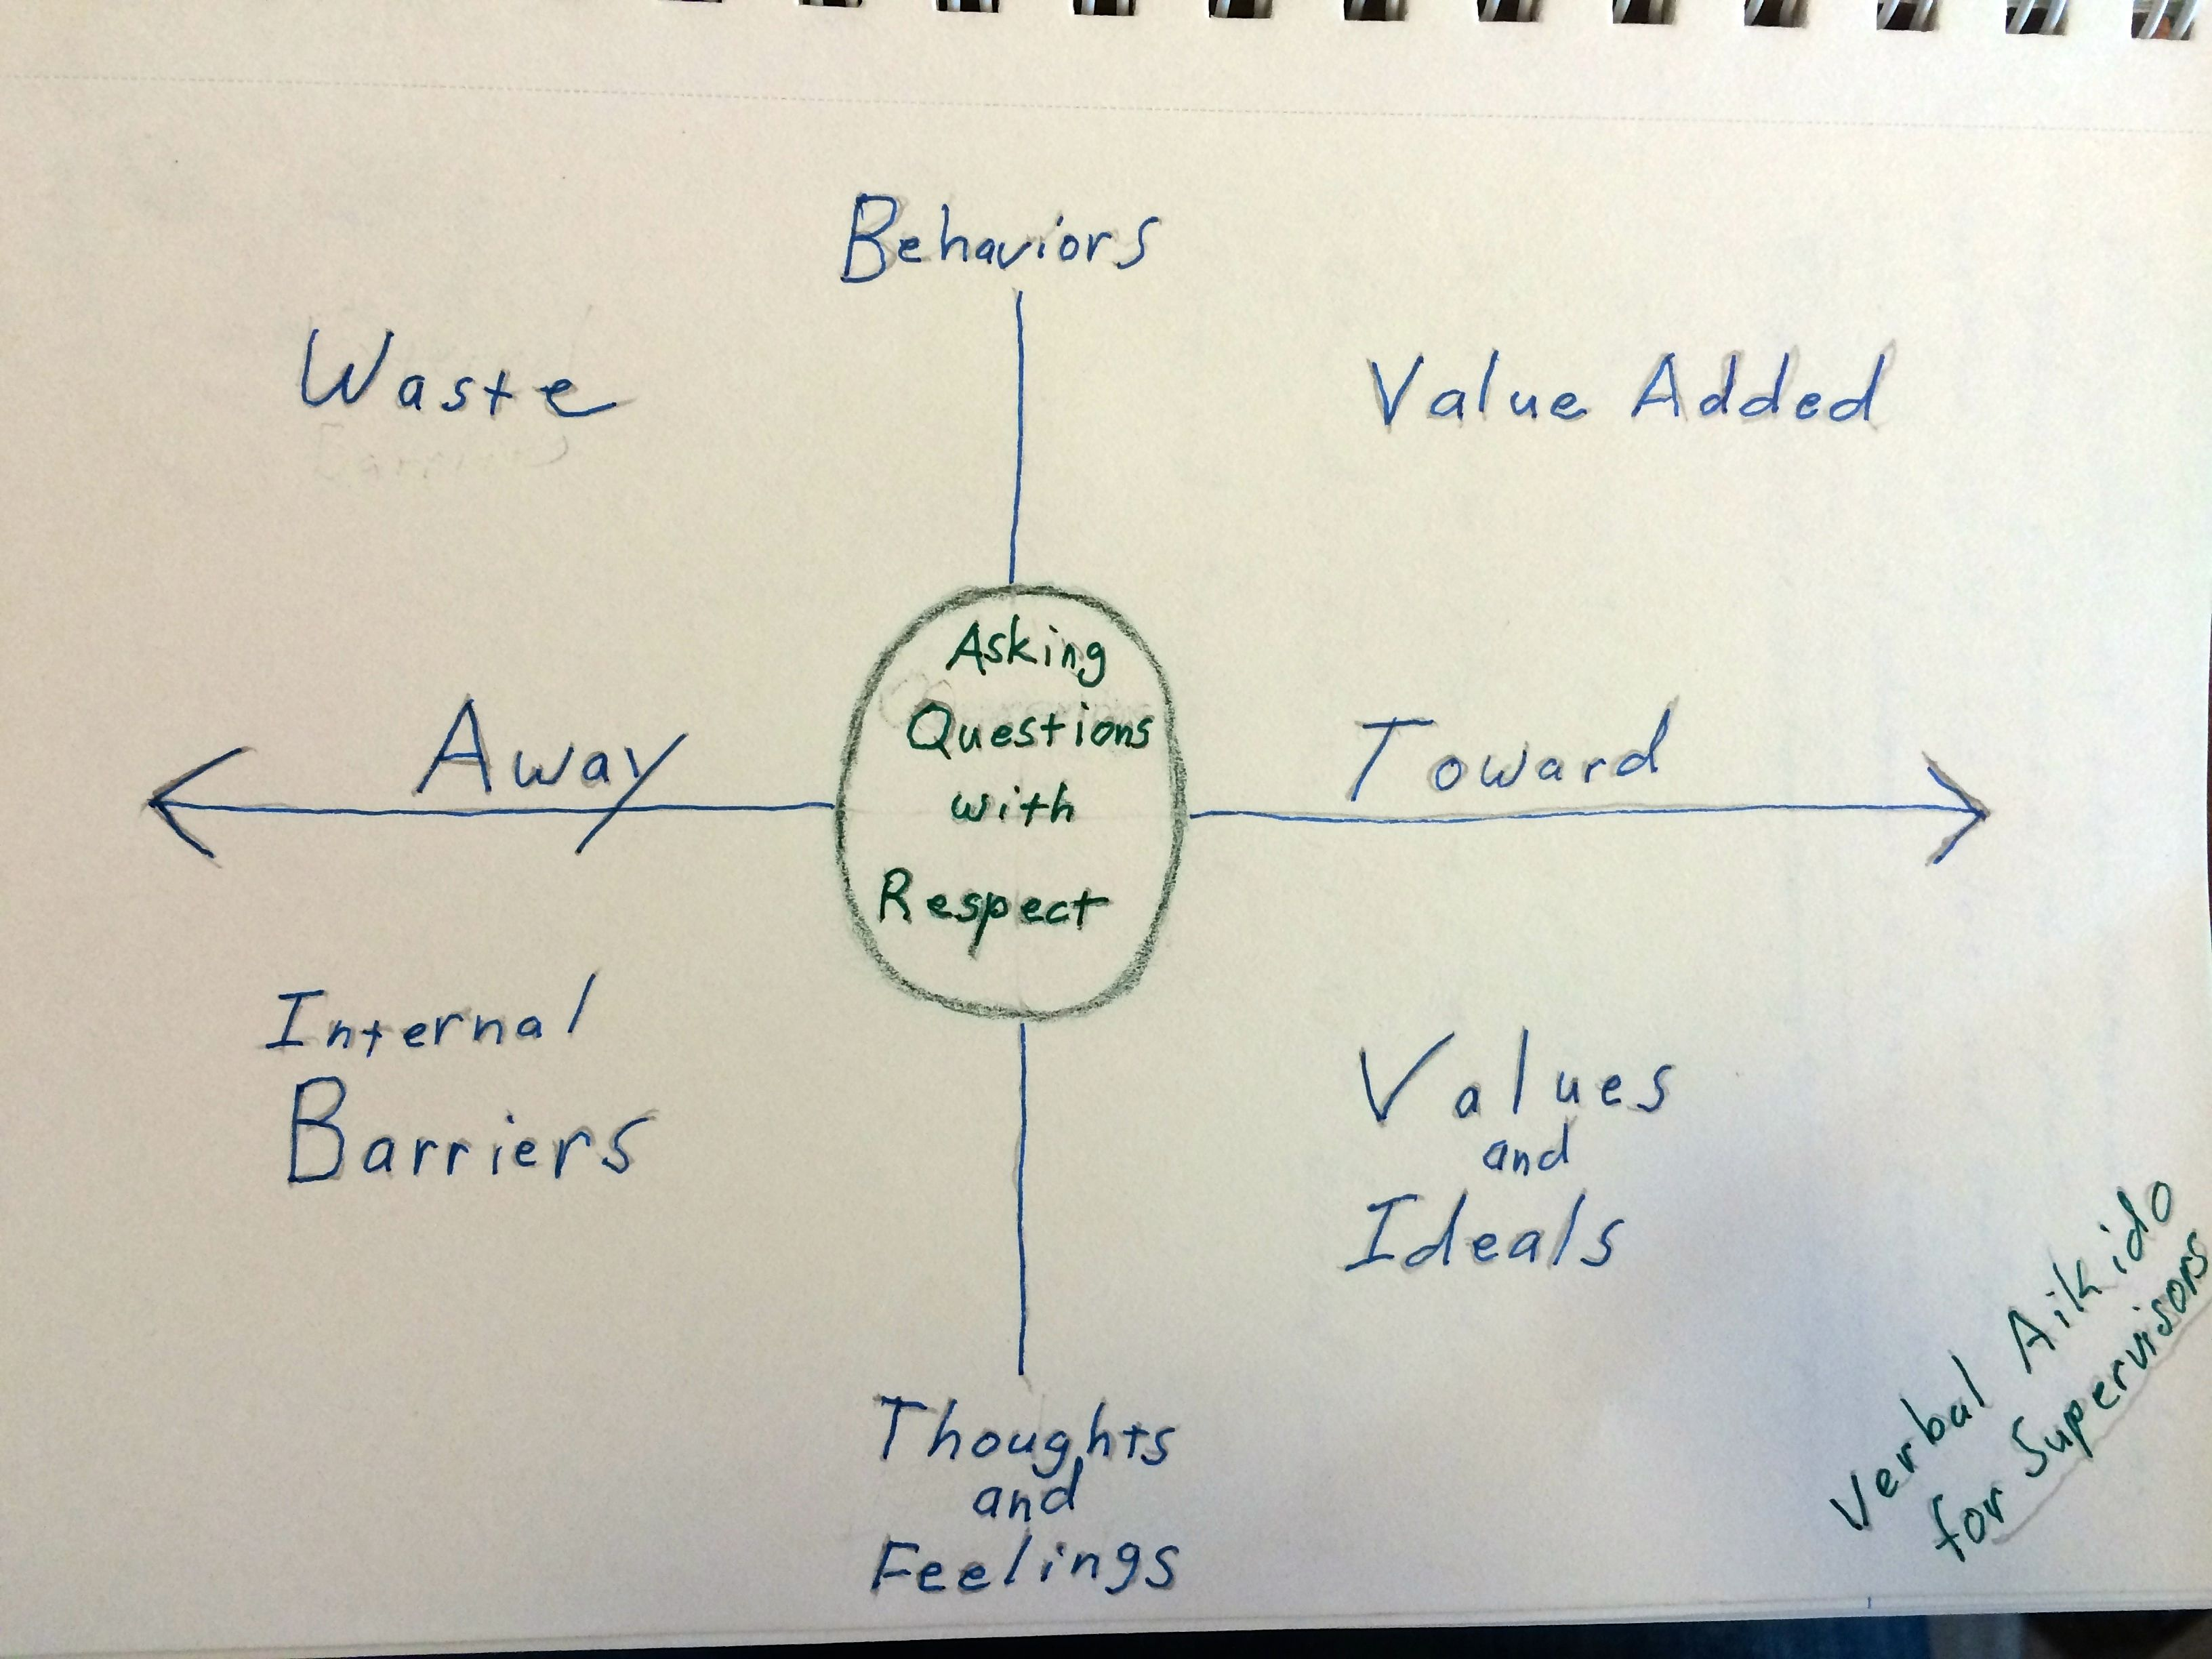 This Is A Lean Systems Toyota Management Matrix